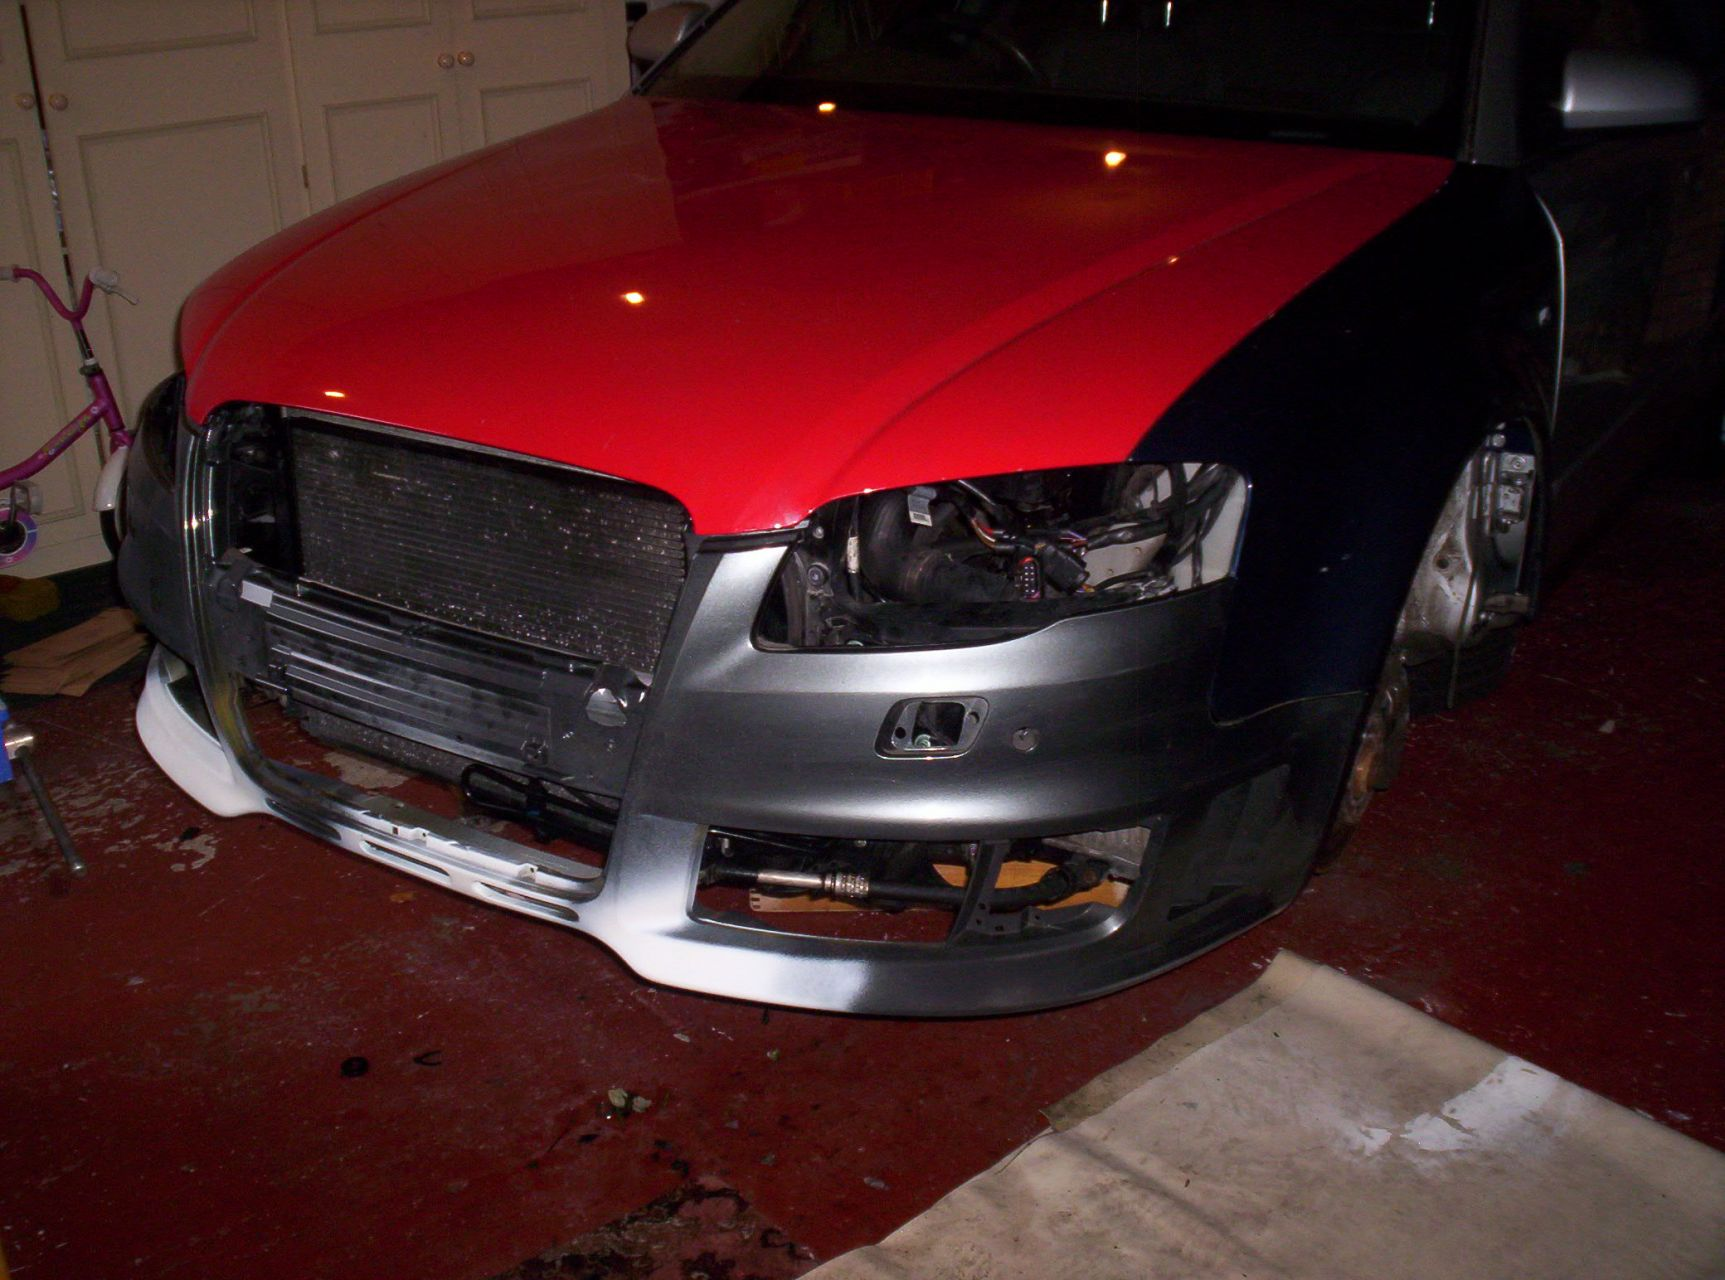 Audi A4 B6 To B7 Rs4 Widebody Replica Conversion Build Diary Page 2